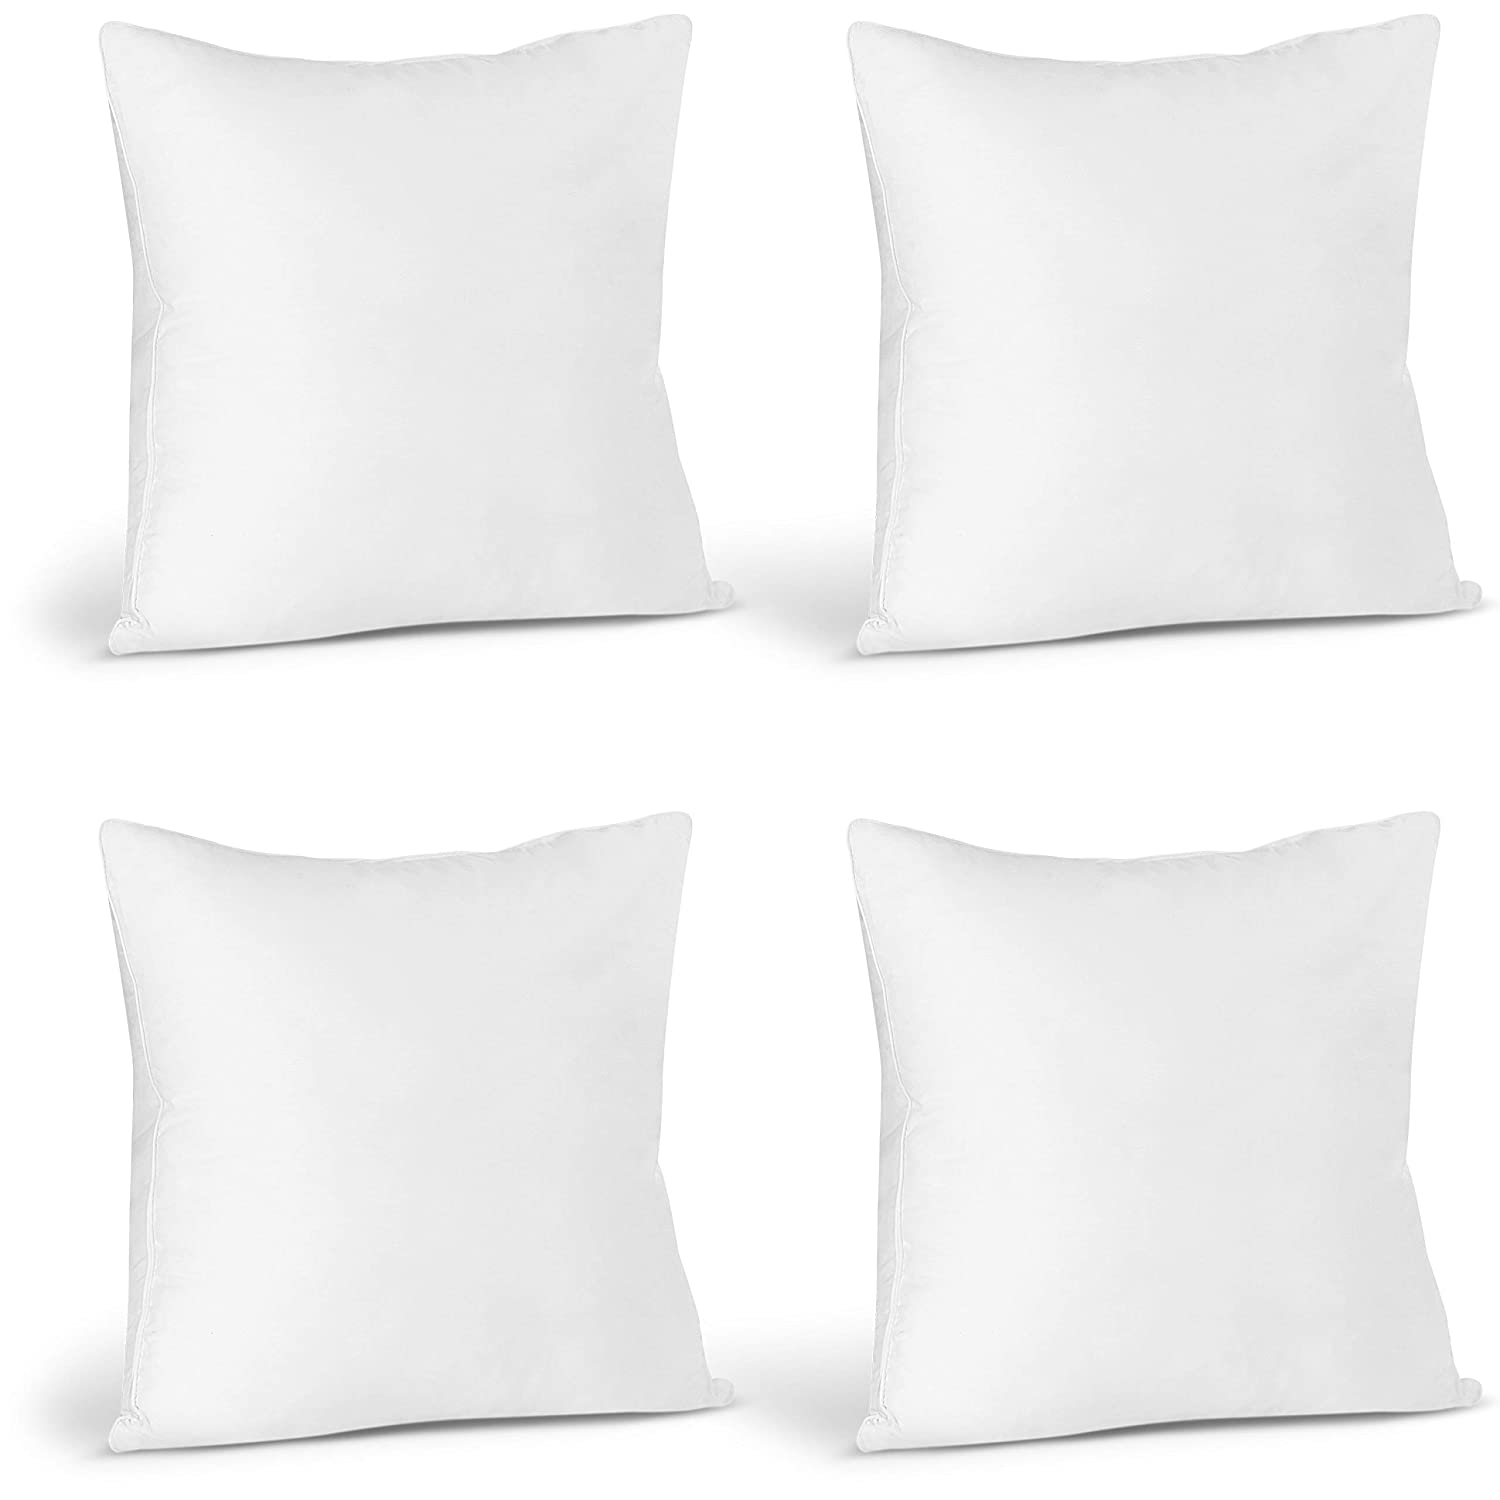 Fantastic Utopia Bedding Throw Pillows Insert Pack Of 4 White 18 X 18 Inches Bed And Couch Pillows Indoor Decorative Pillows Cjindustries Chair Design For Home Cjindustriesco